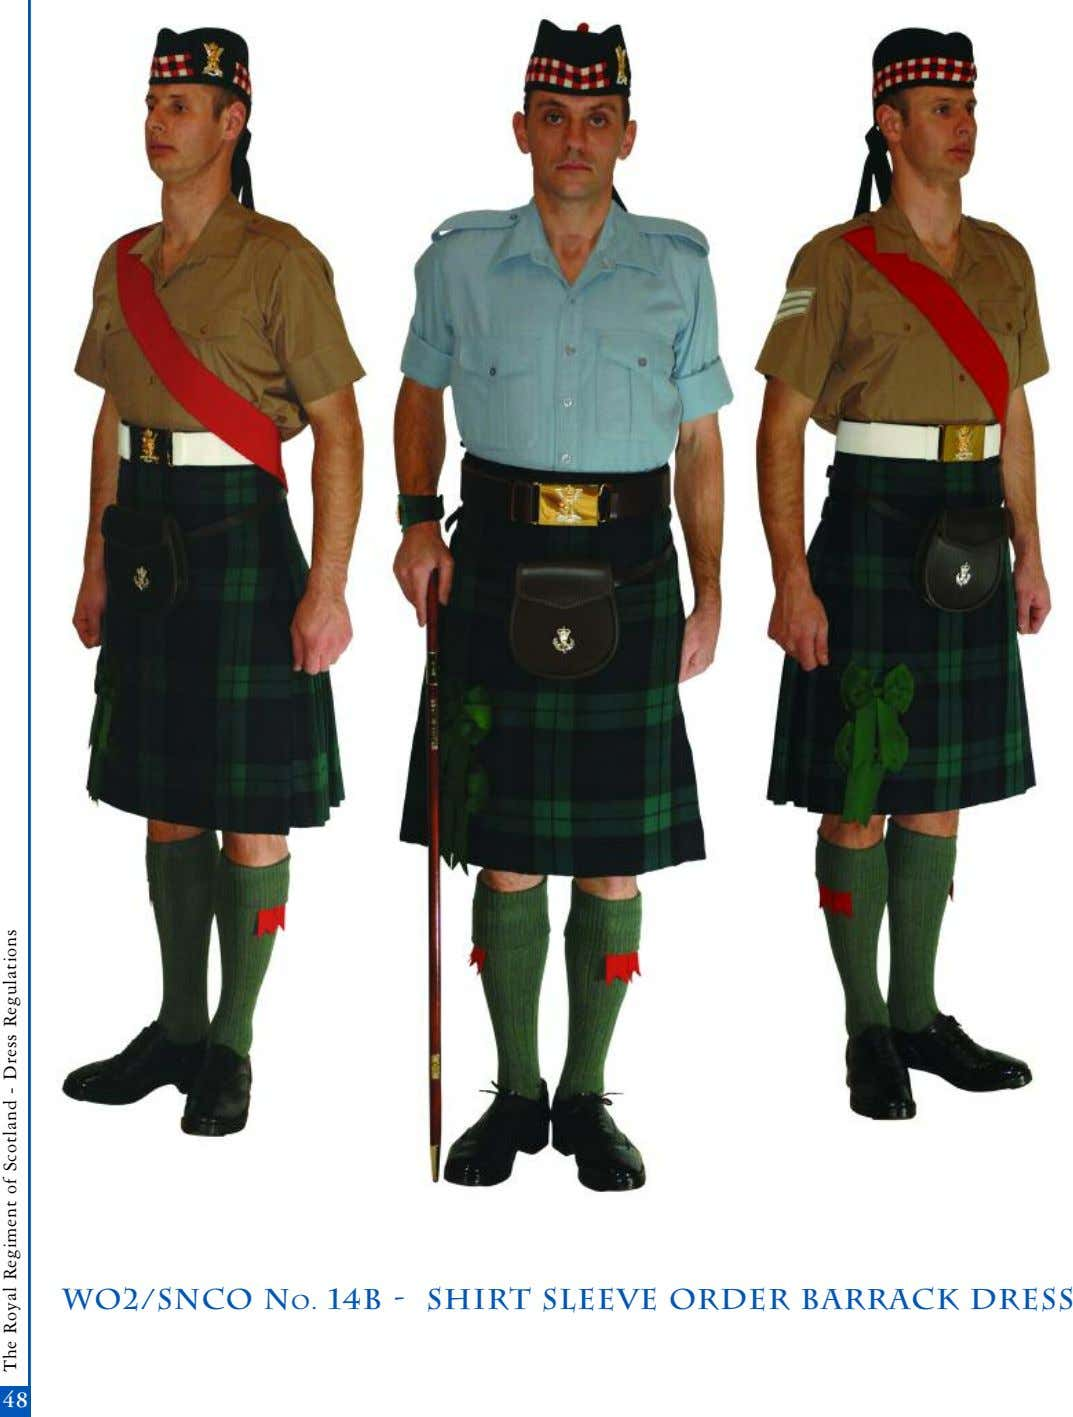 wo2/snco No. 14b - shirt sleeve order barrack dress 4848 The Royal Regiment of Scotland